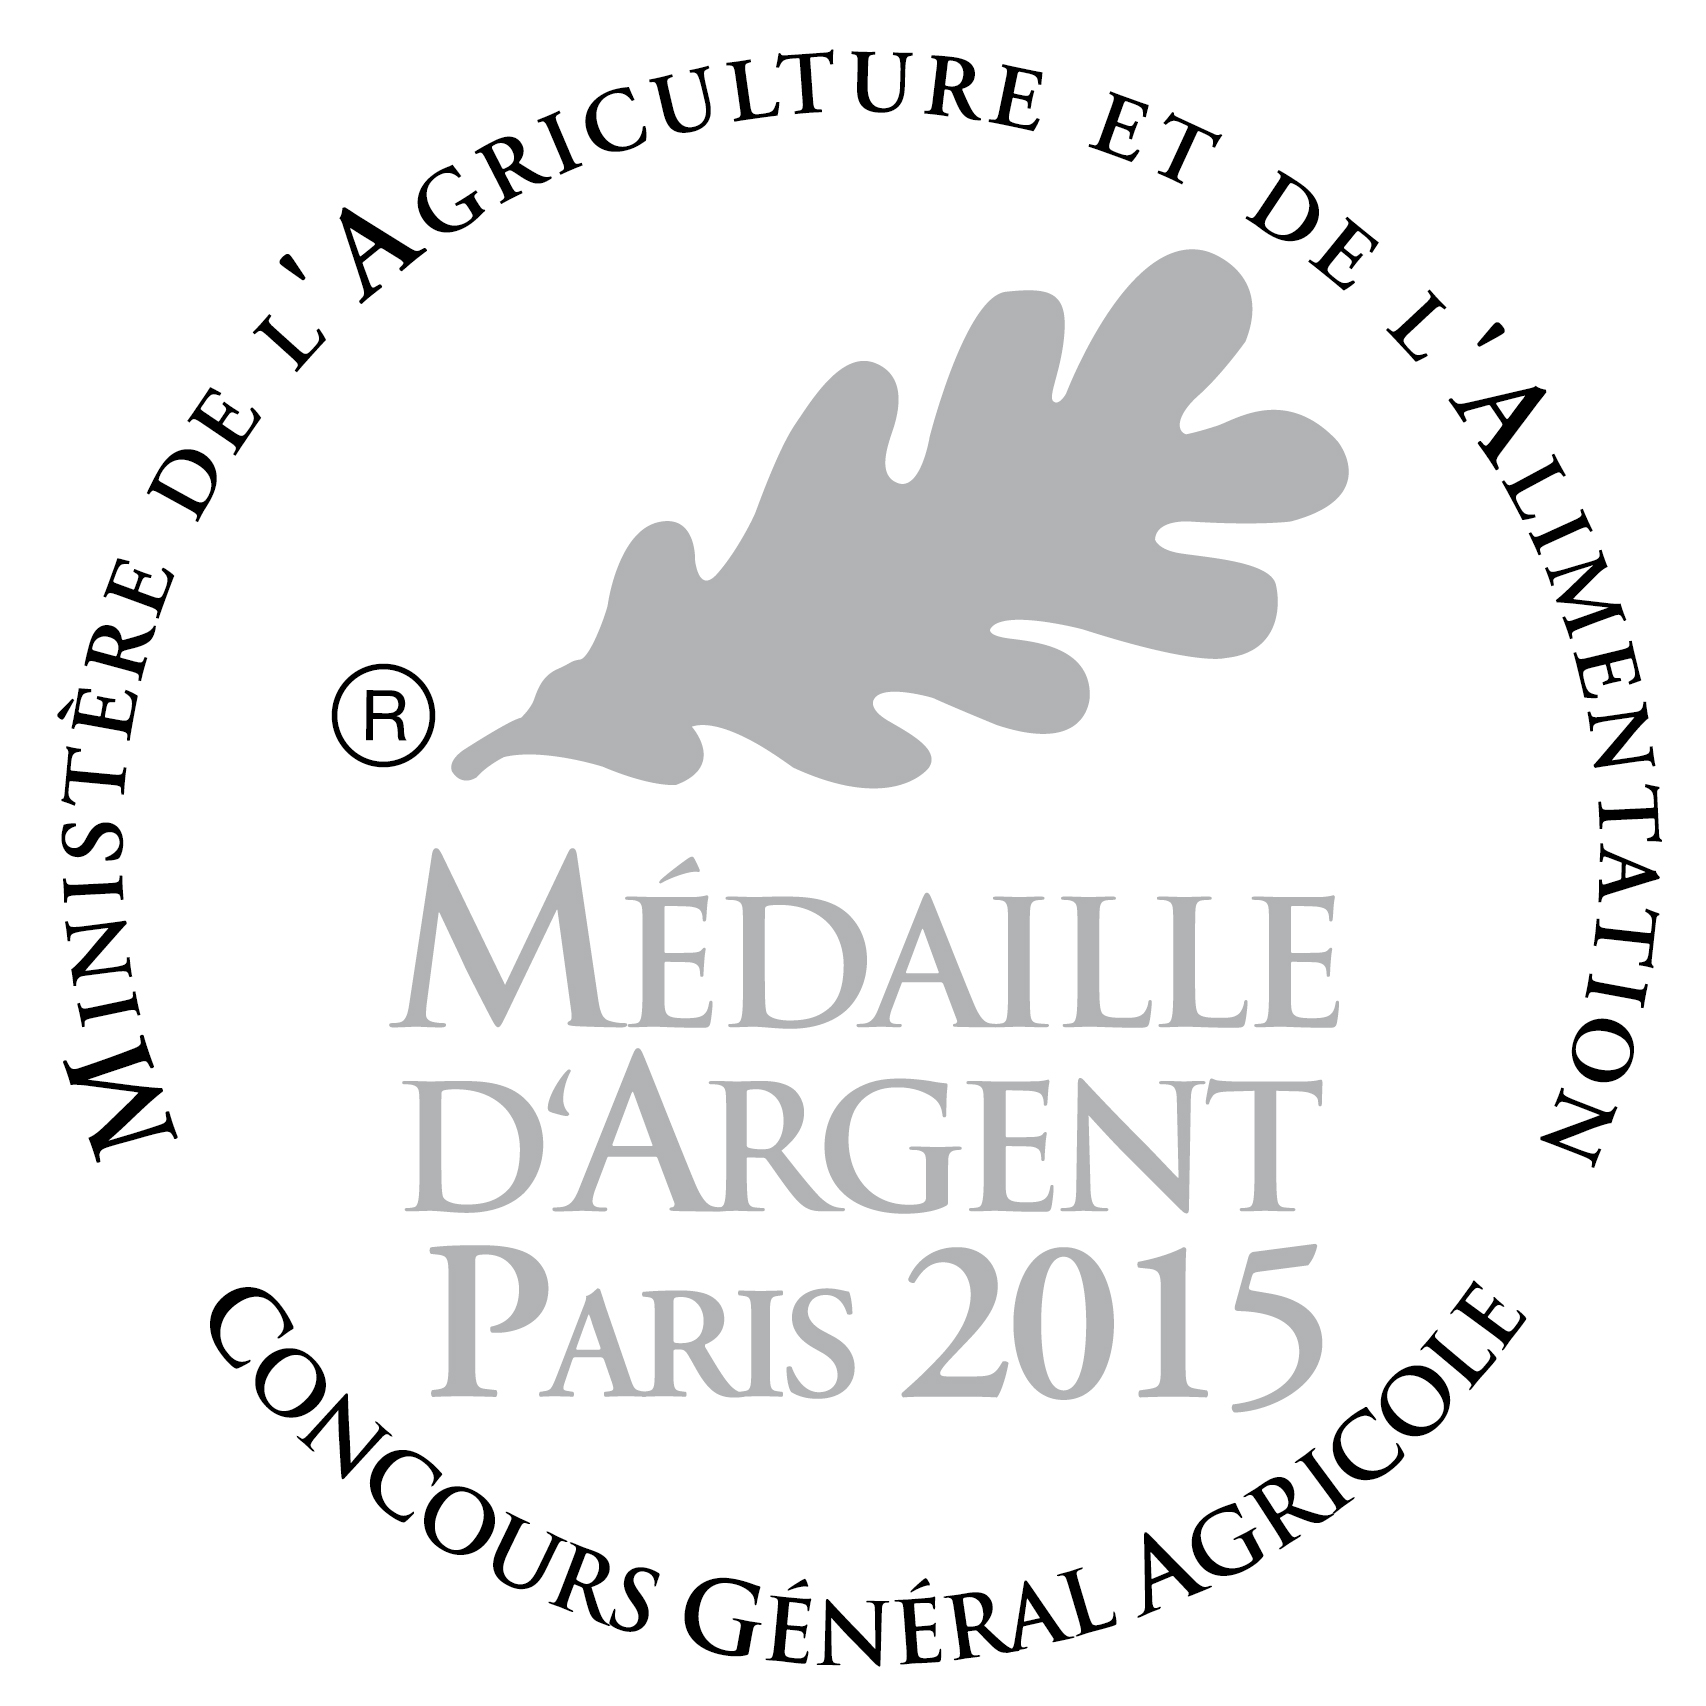 medaille argent Concours general agricole